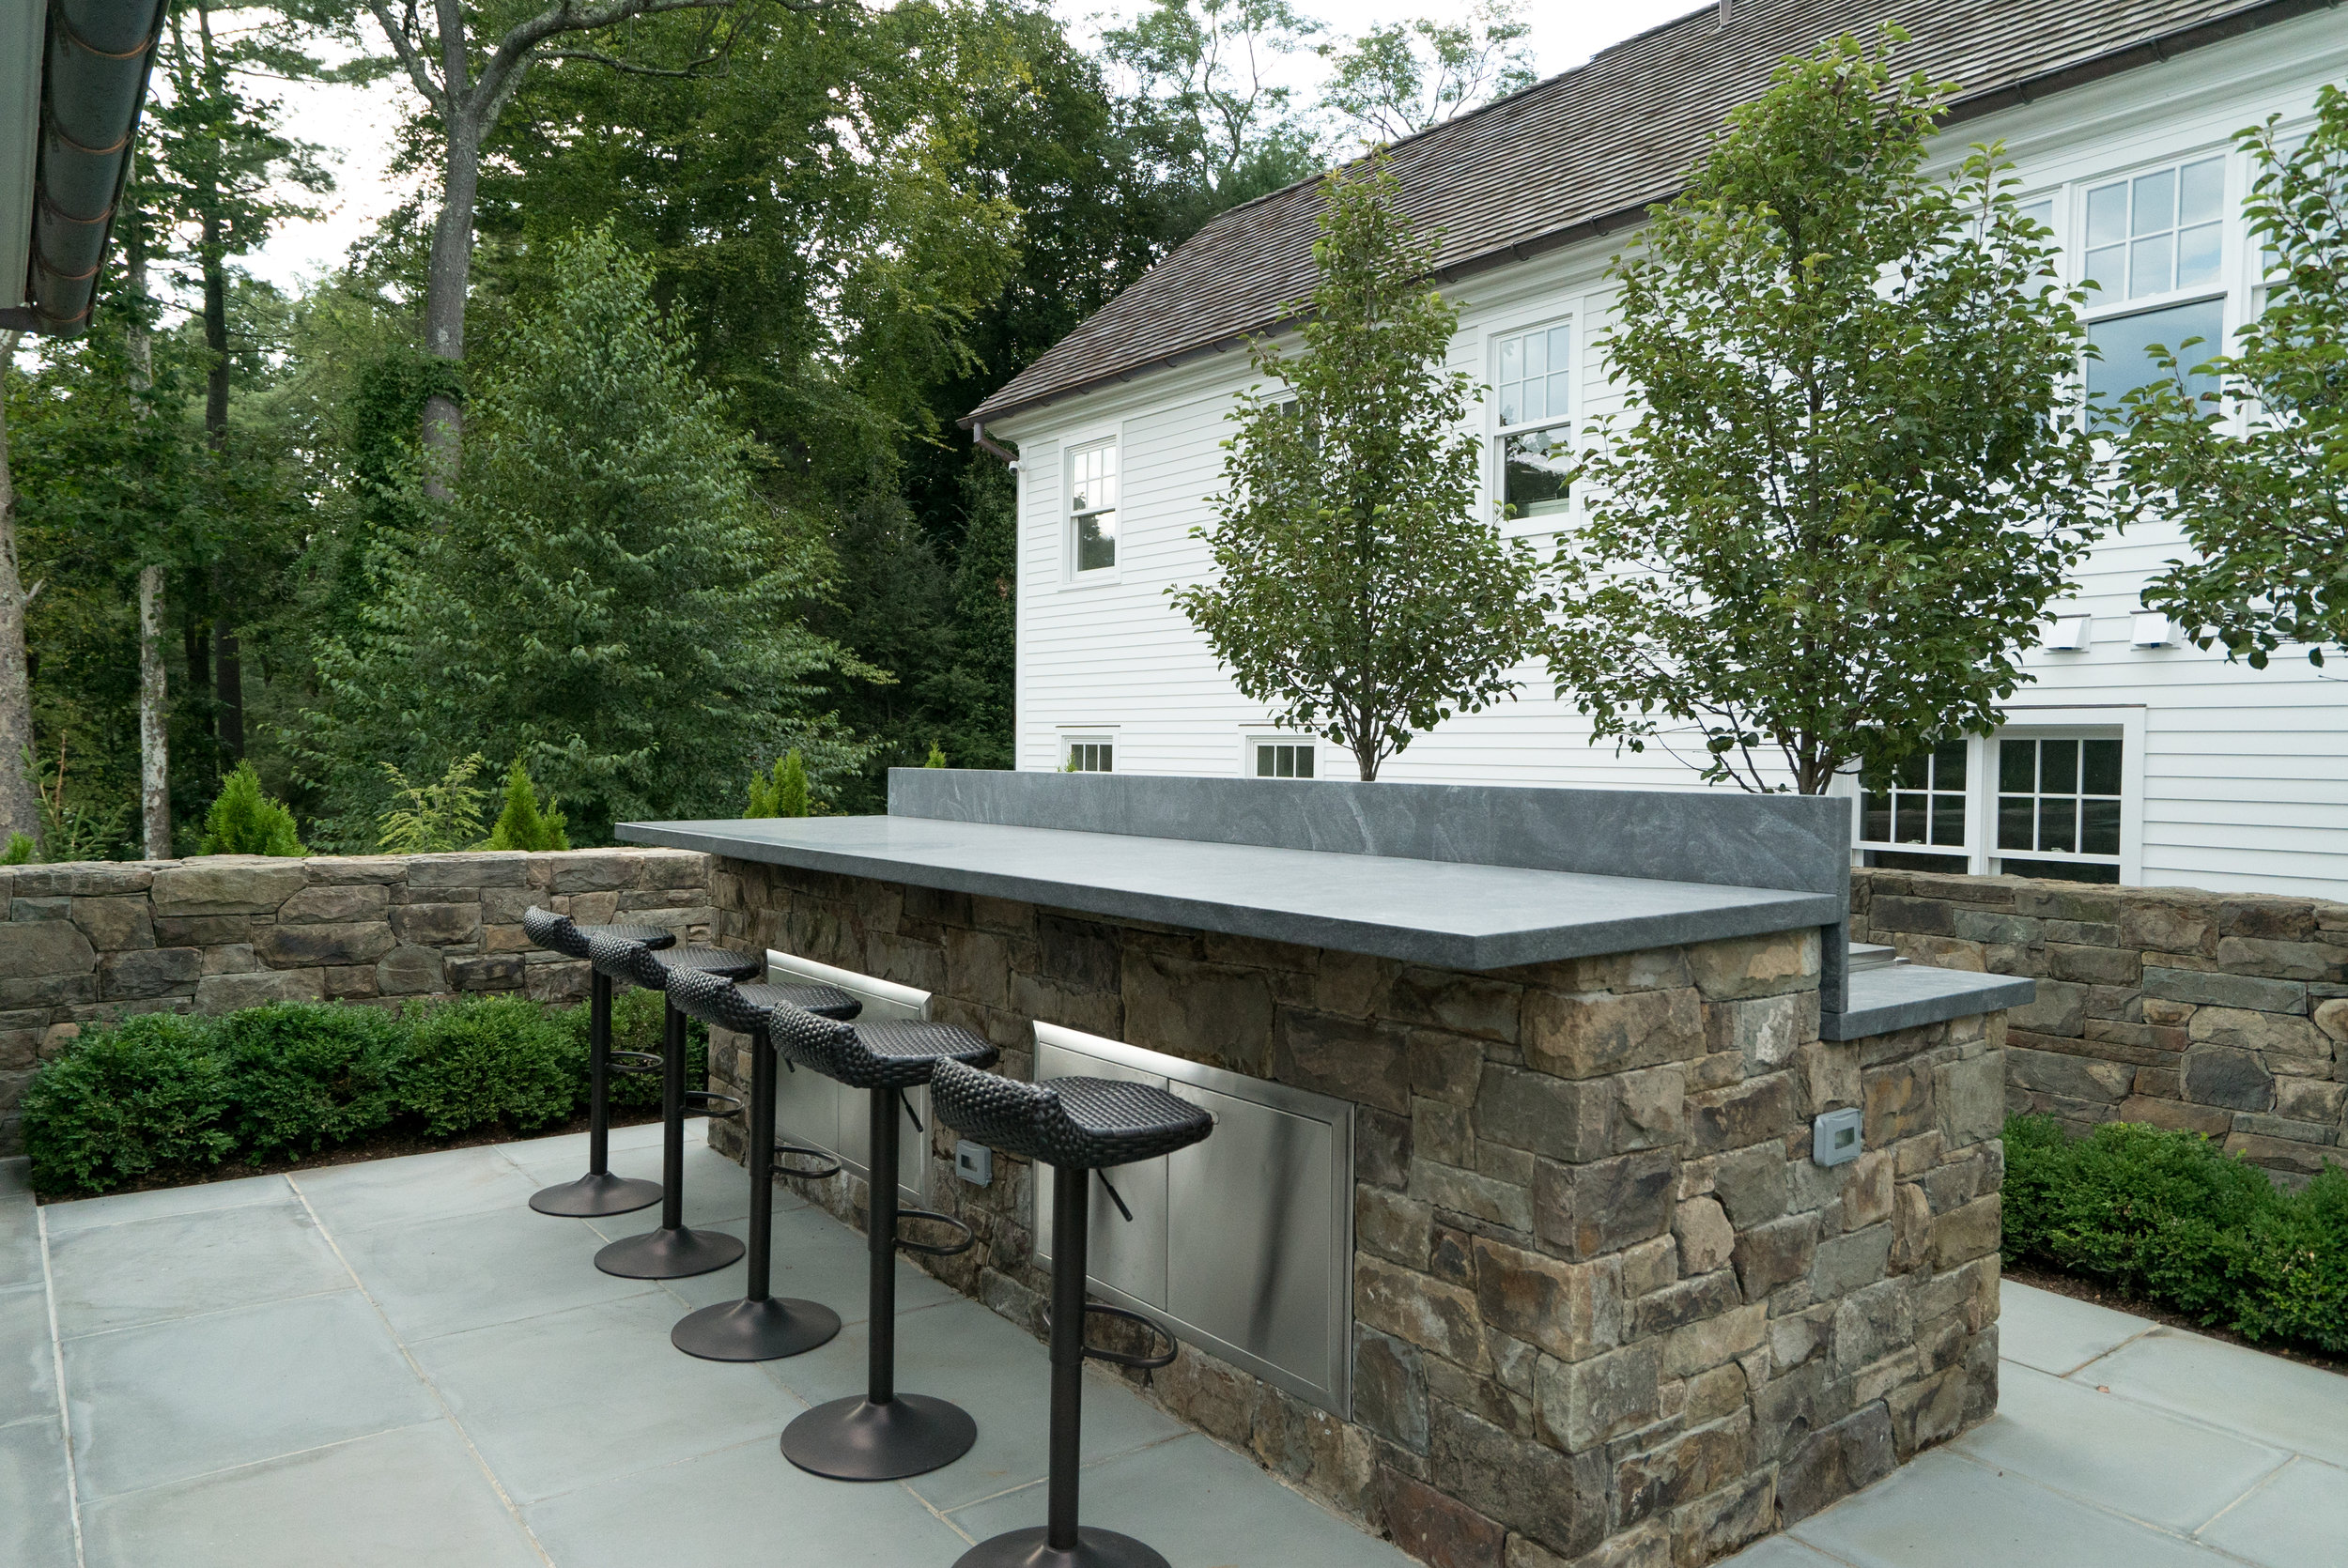 MATERIALS USED: JET MIST GRANITE COUNTER, BROOKLINE BBQ FACE